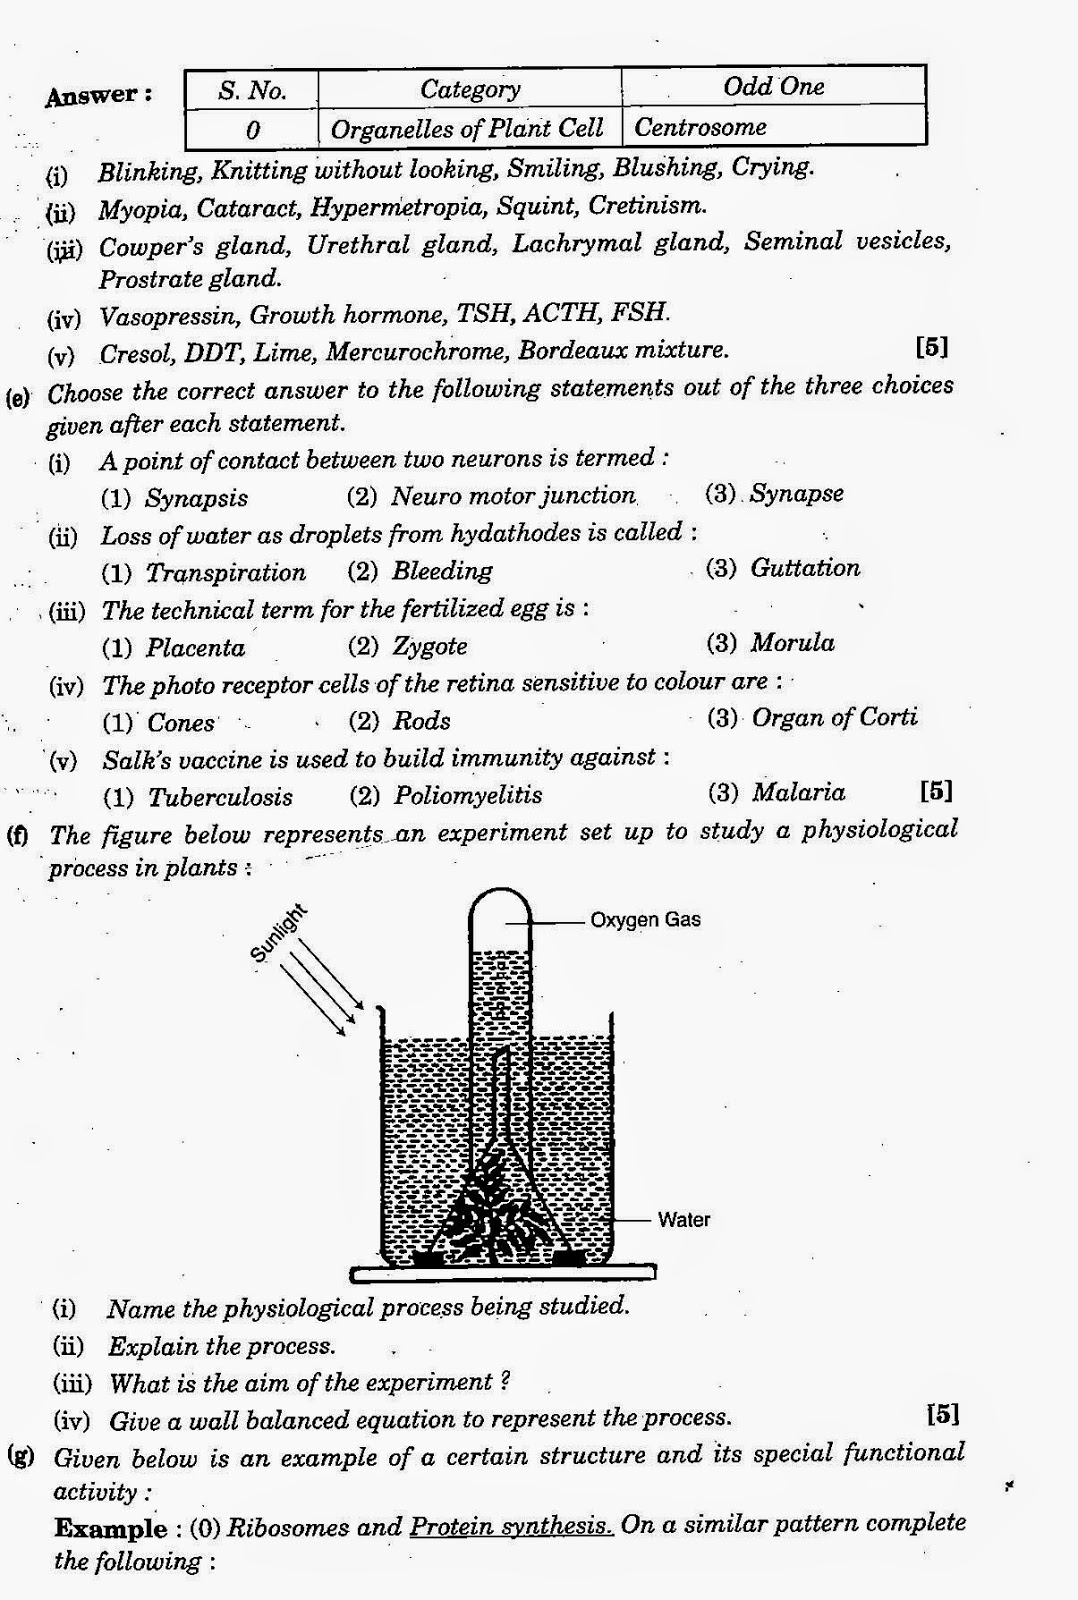 icse class 10th Biology solved question paper 2010